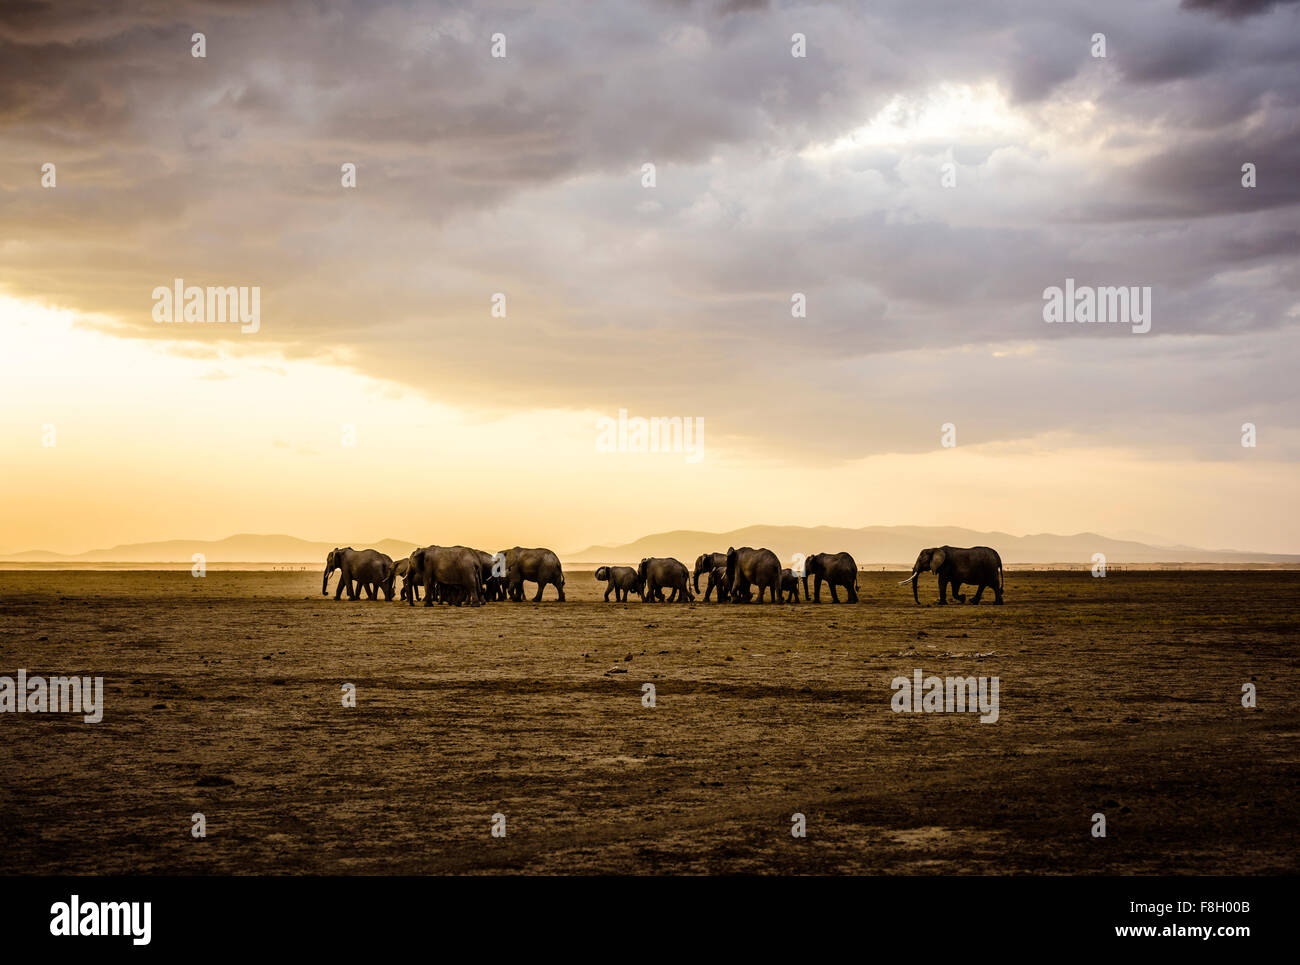 Herd of elephants in savanna landscape - Stock Image